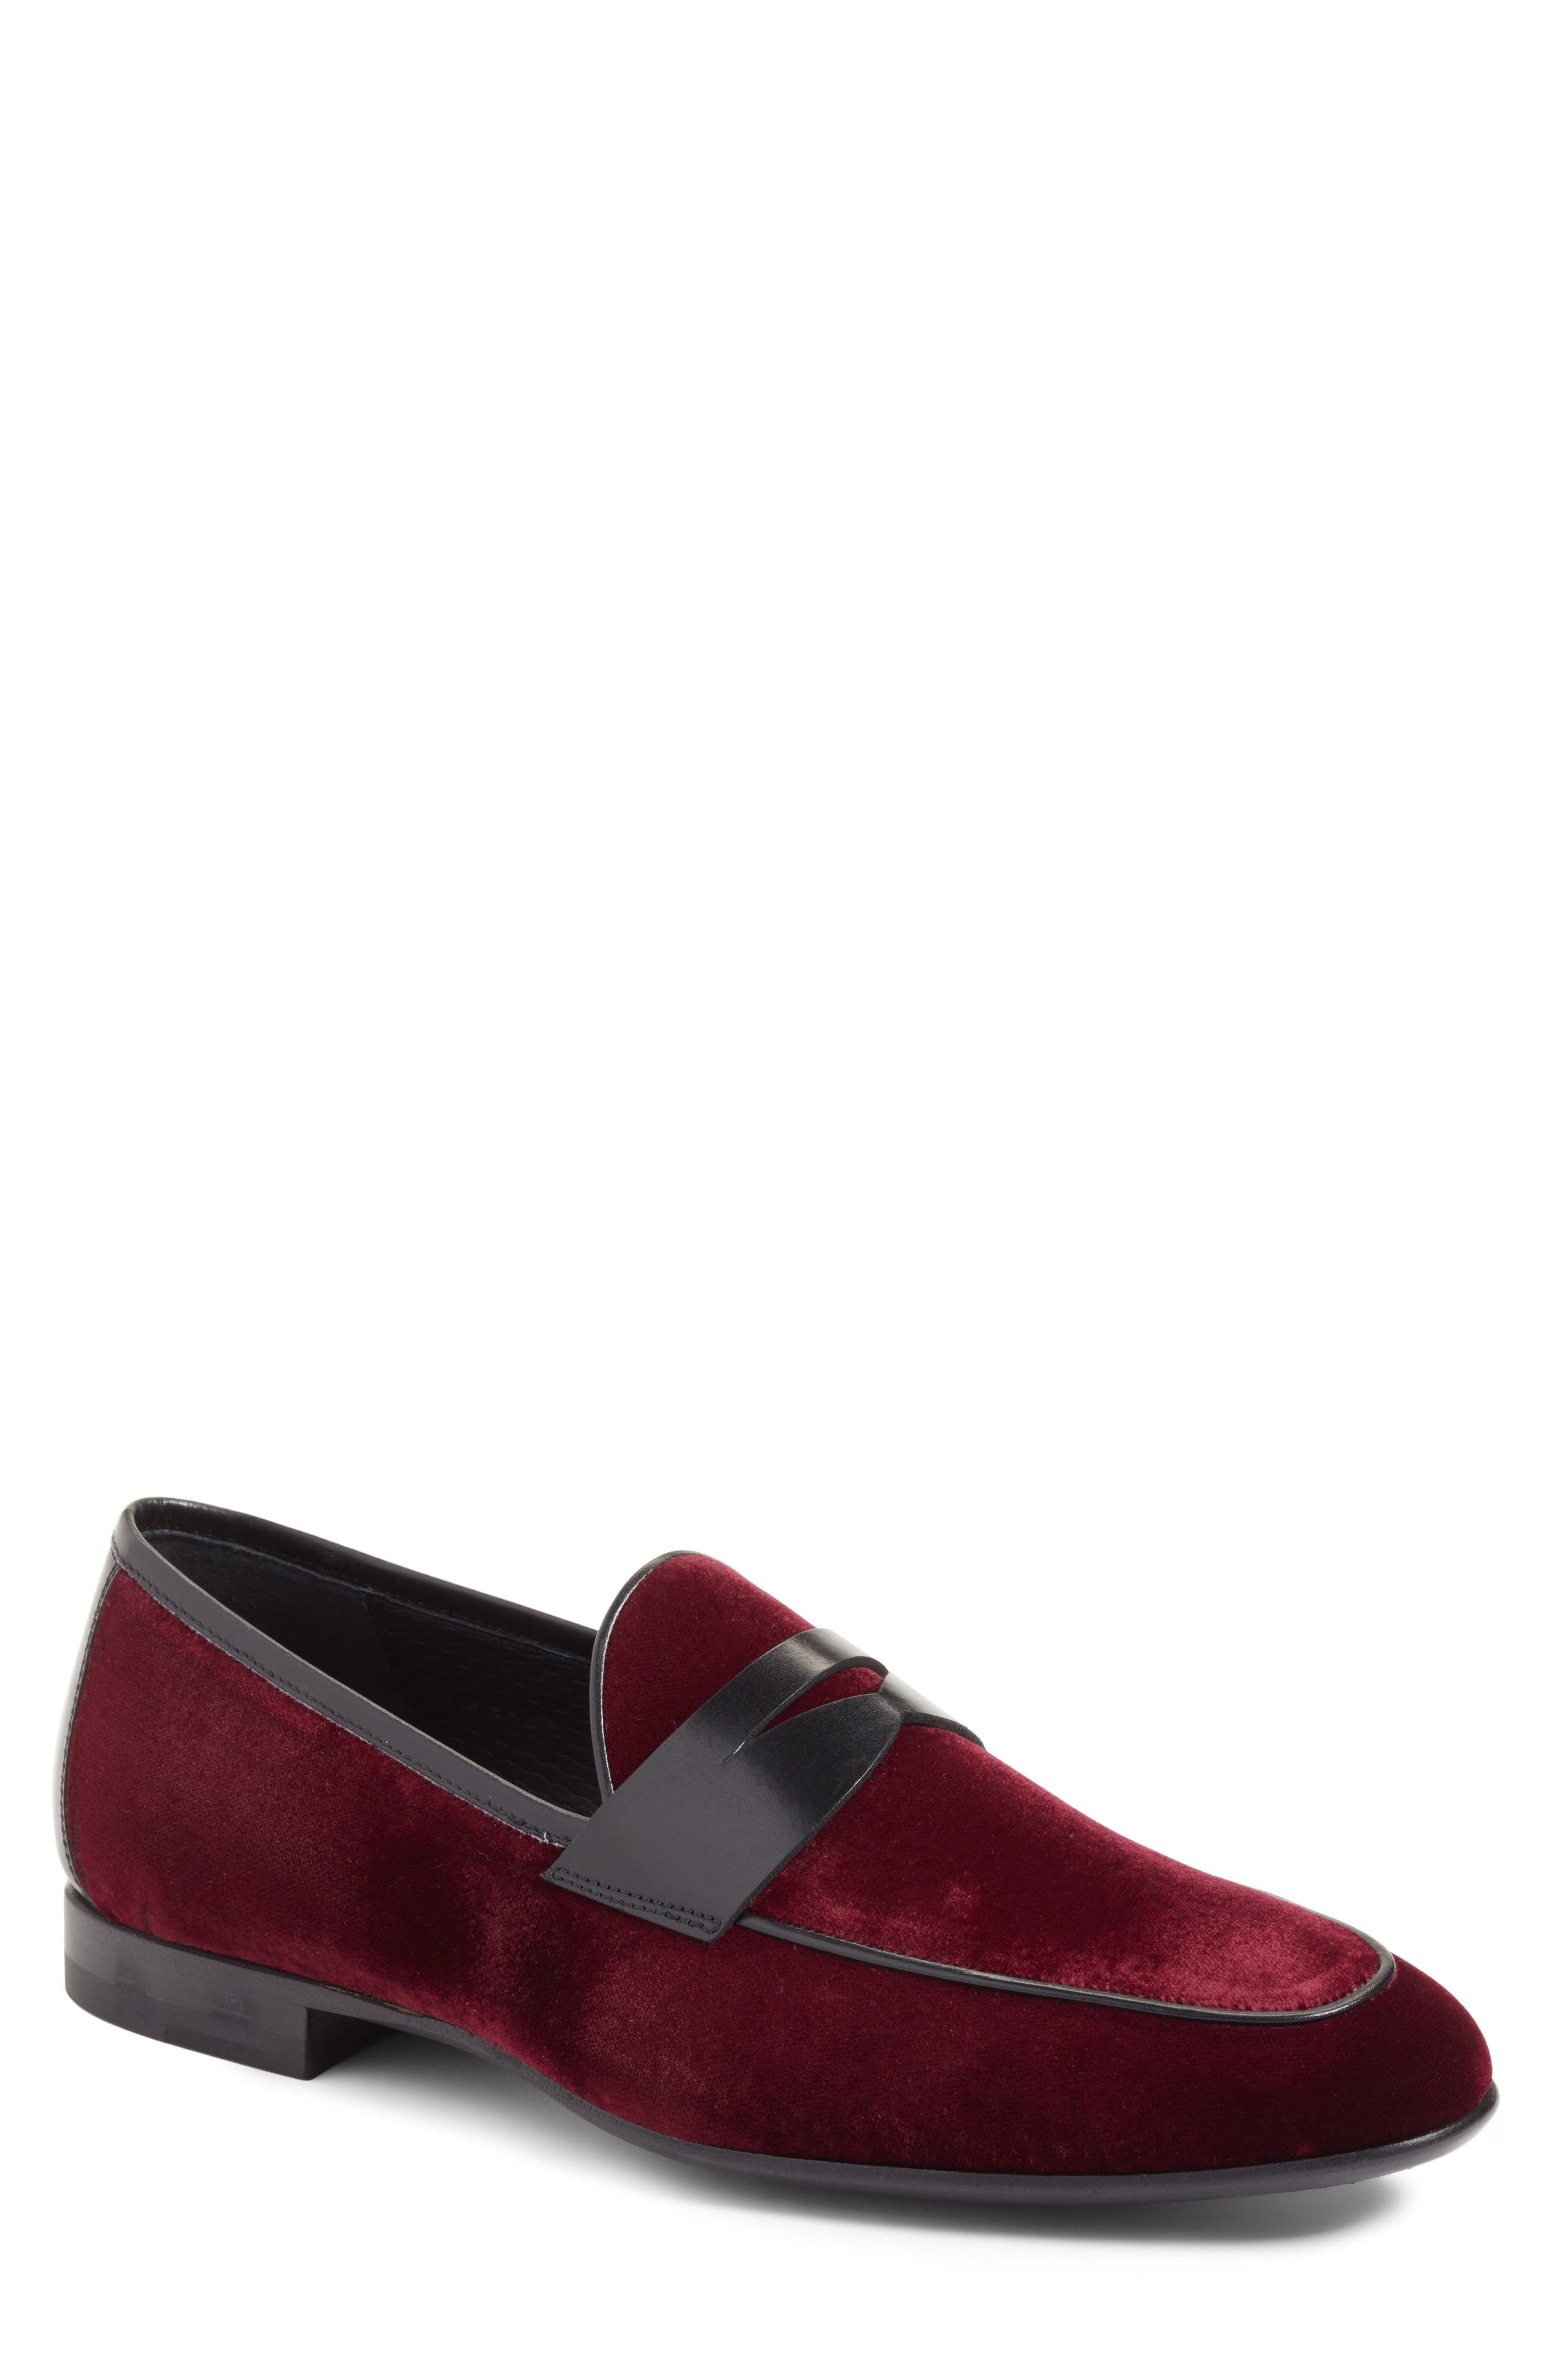 Dorado Penny Loafer,                             Main thumbnail 1, color,                             BURGUNDY